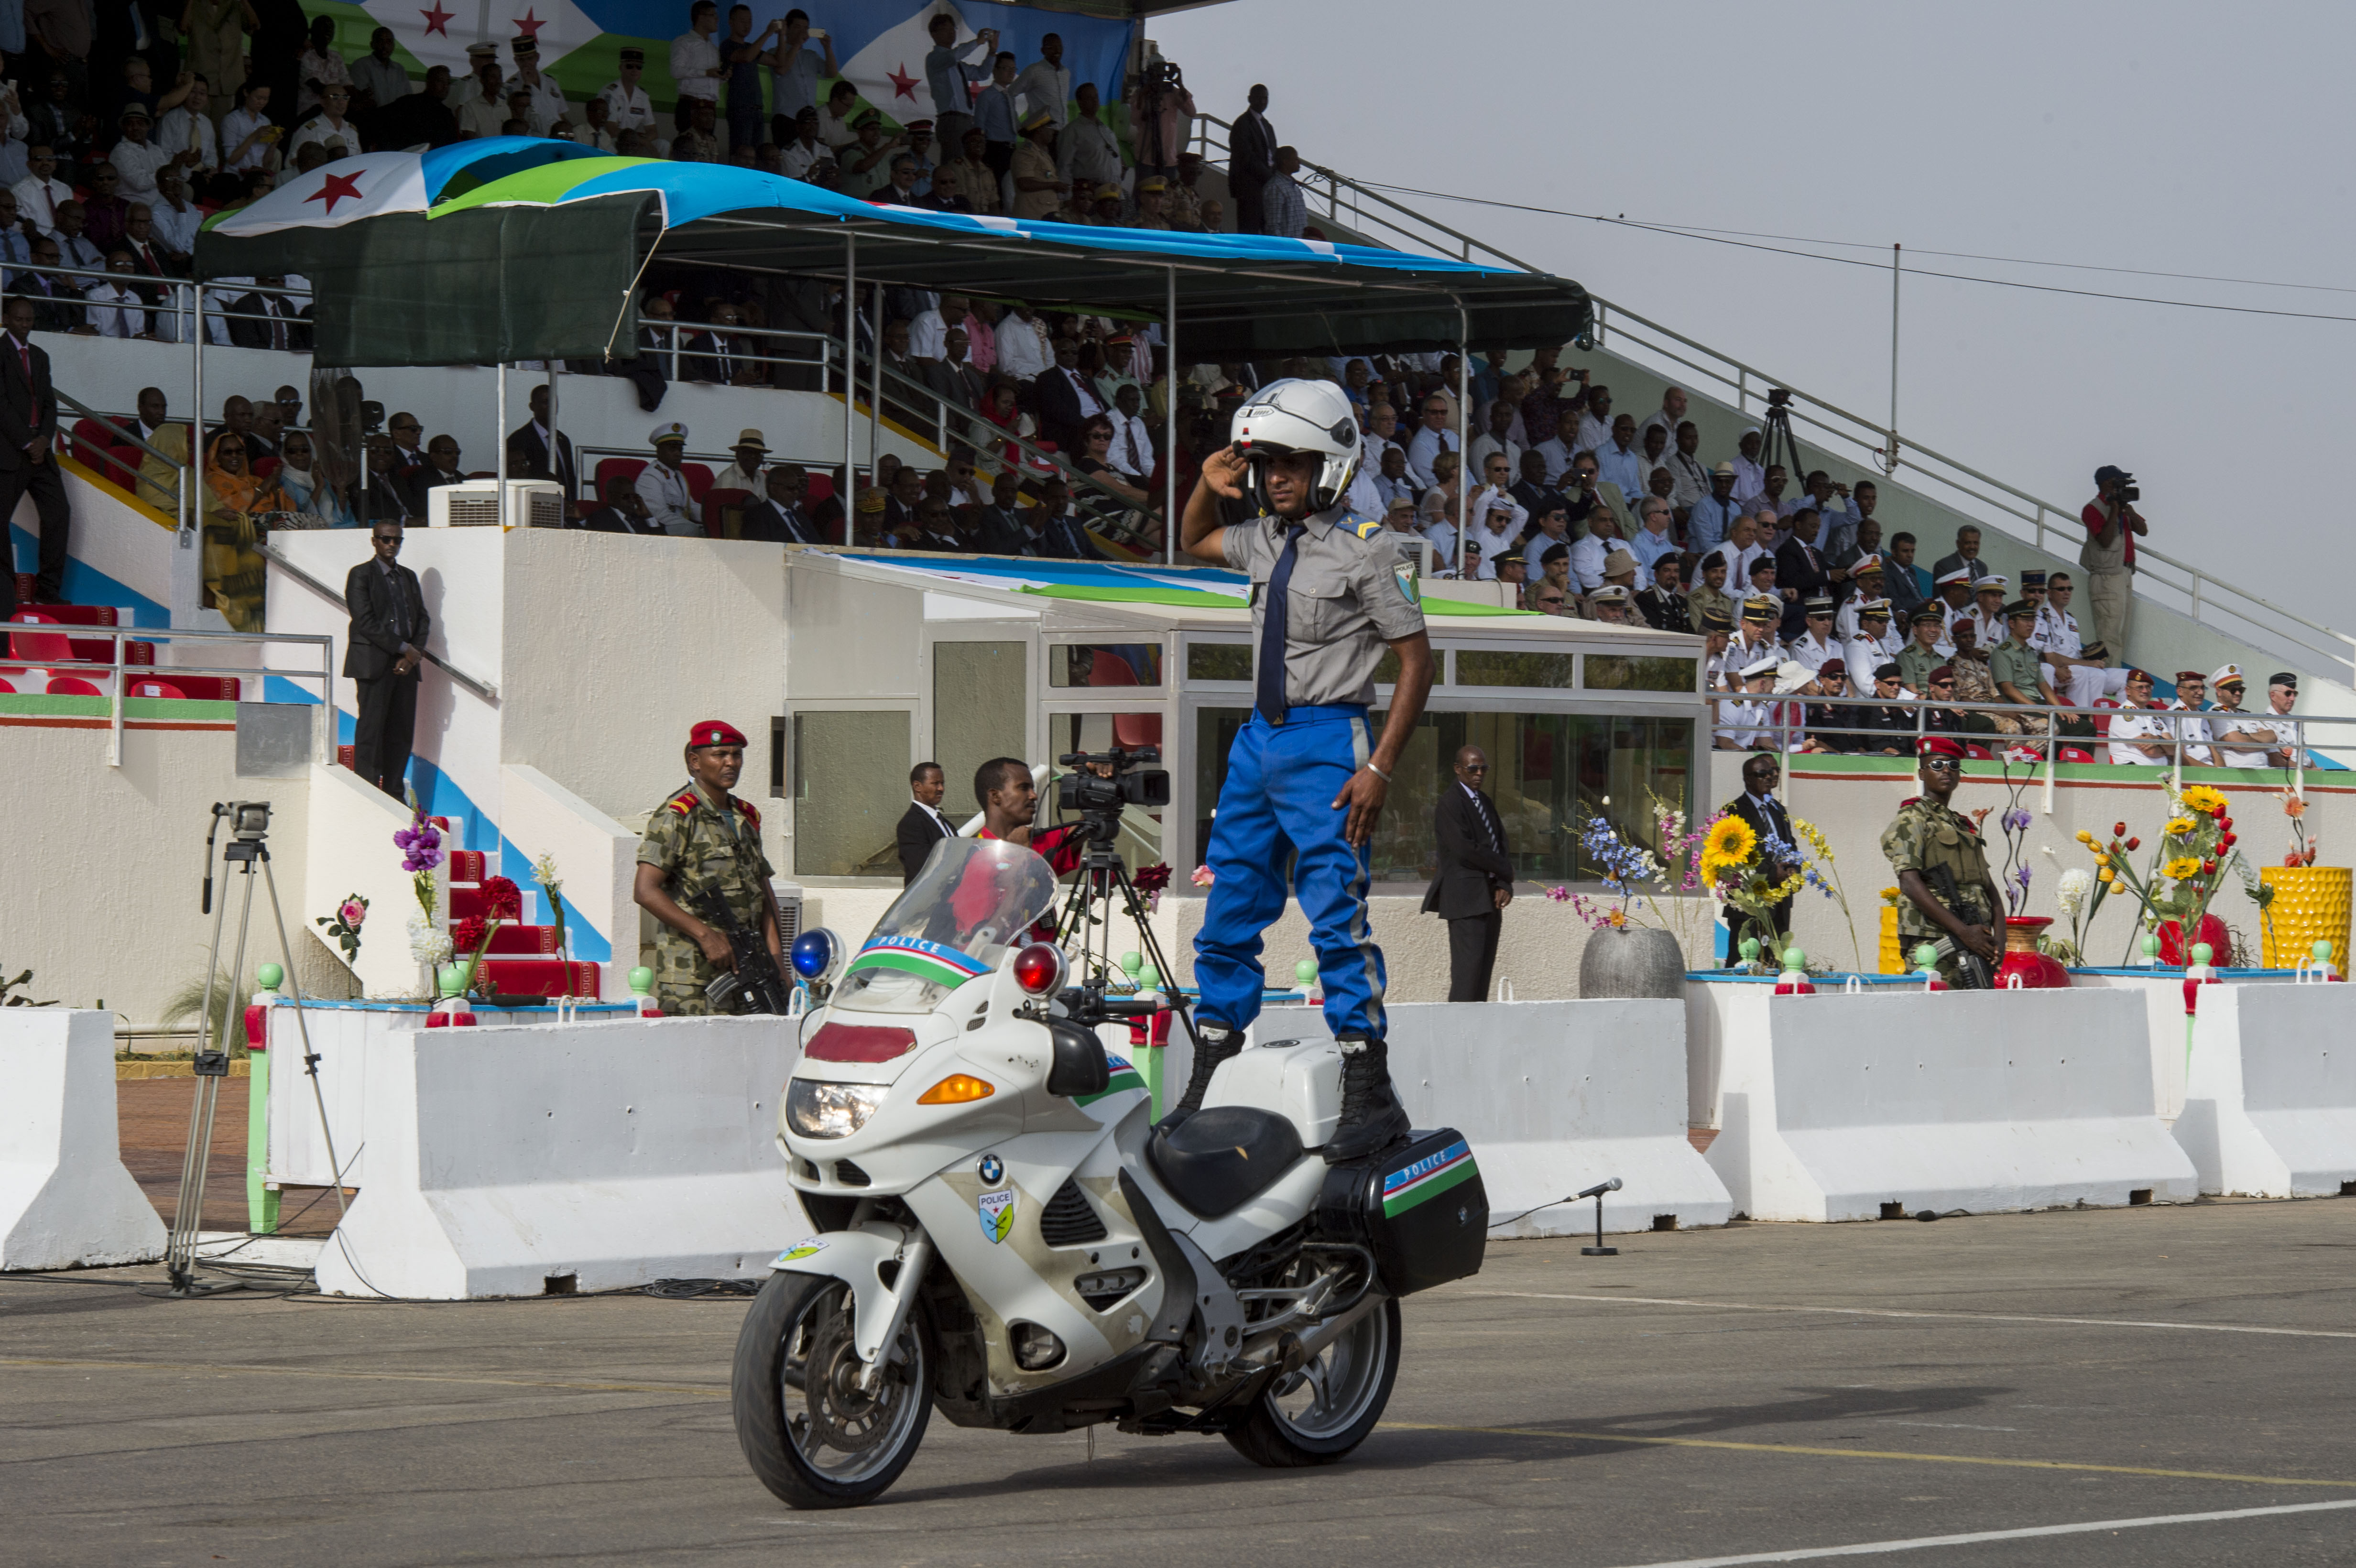 A Djiboutian police officer displays acrobatic skills during the Djibouti Independence Day parade June 27, 2016, at Djibouti. The parade included marching units from each of Djibouti's military branches and law enforcement, as well as armored vehicles. (U.S. Air Force photo by Staff Sgt. Eric Summers Jr.)